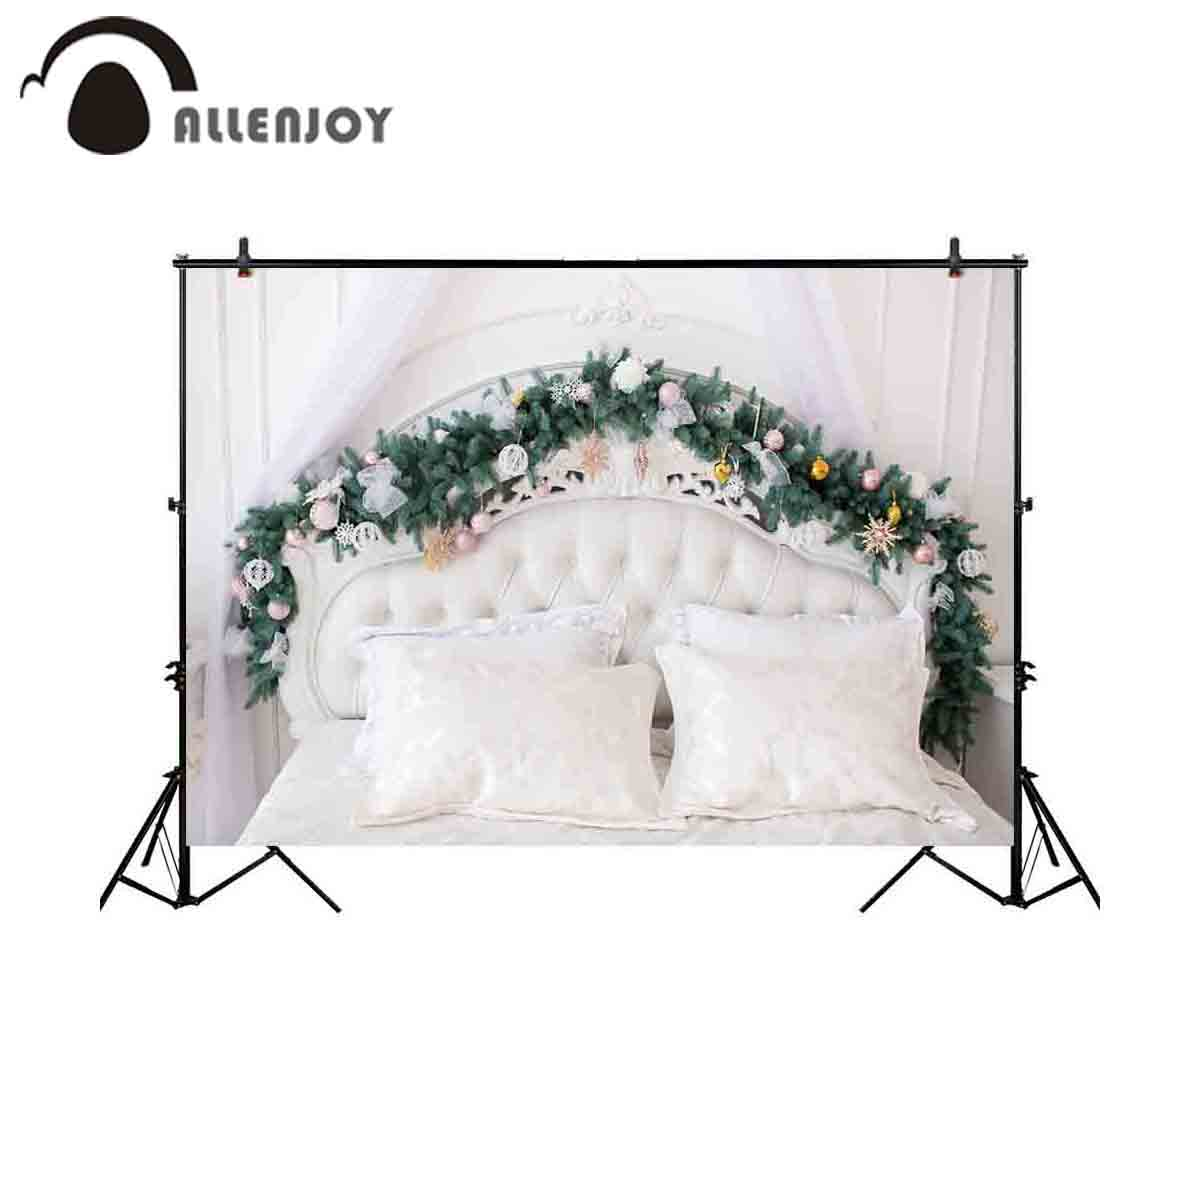 Allenjoy photography background Christmas headboard tufted pine tree leaf backdrop photocall photo studio photobooth fabric allenjoy photography backdrop snow winter house christmas tree party children new background photocall customize photo printed